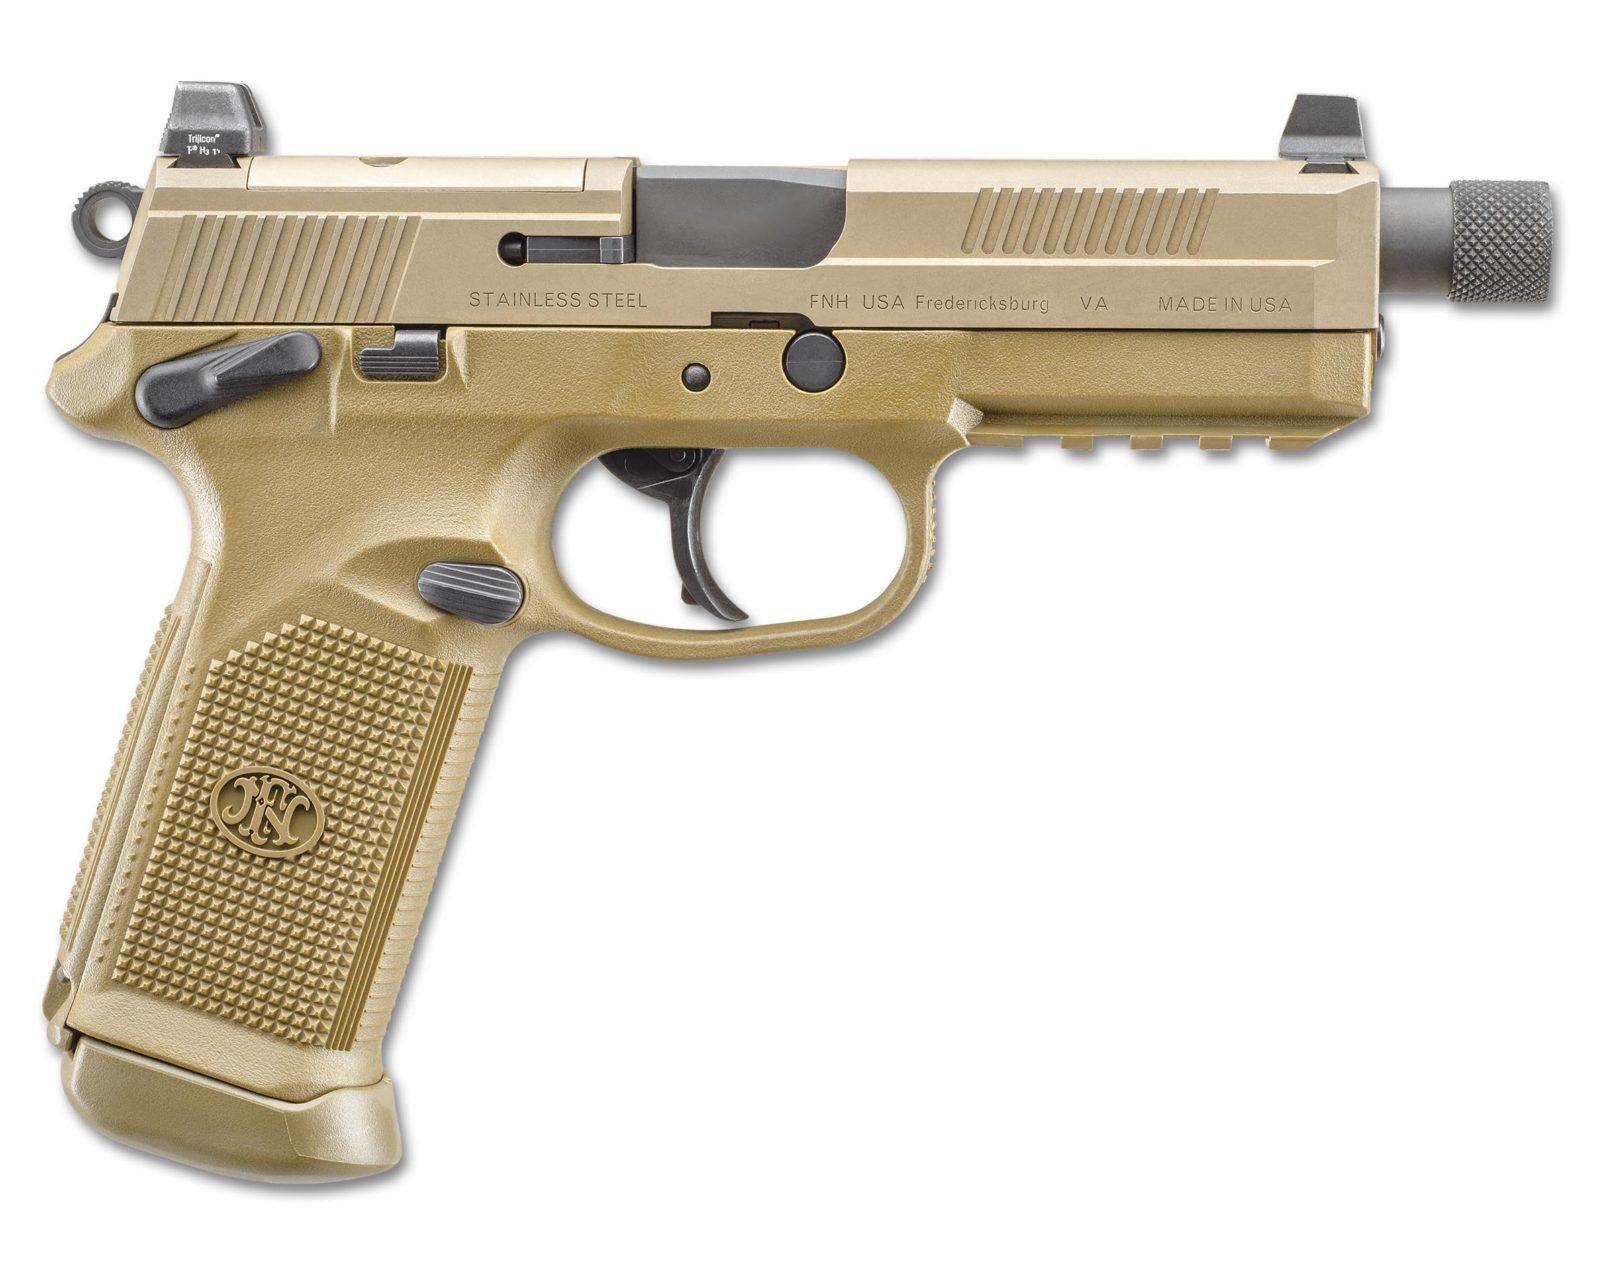 Intruders Beware: The Best 10 Guns For Home Defense